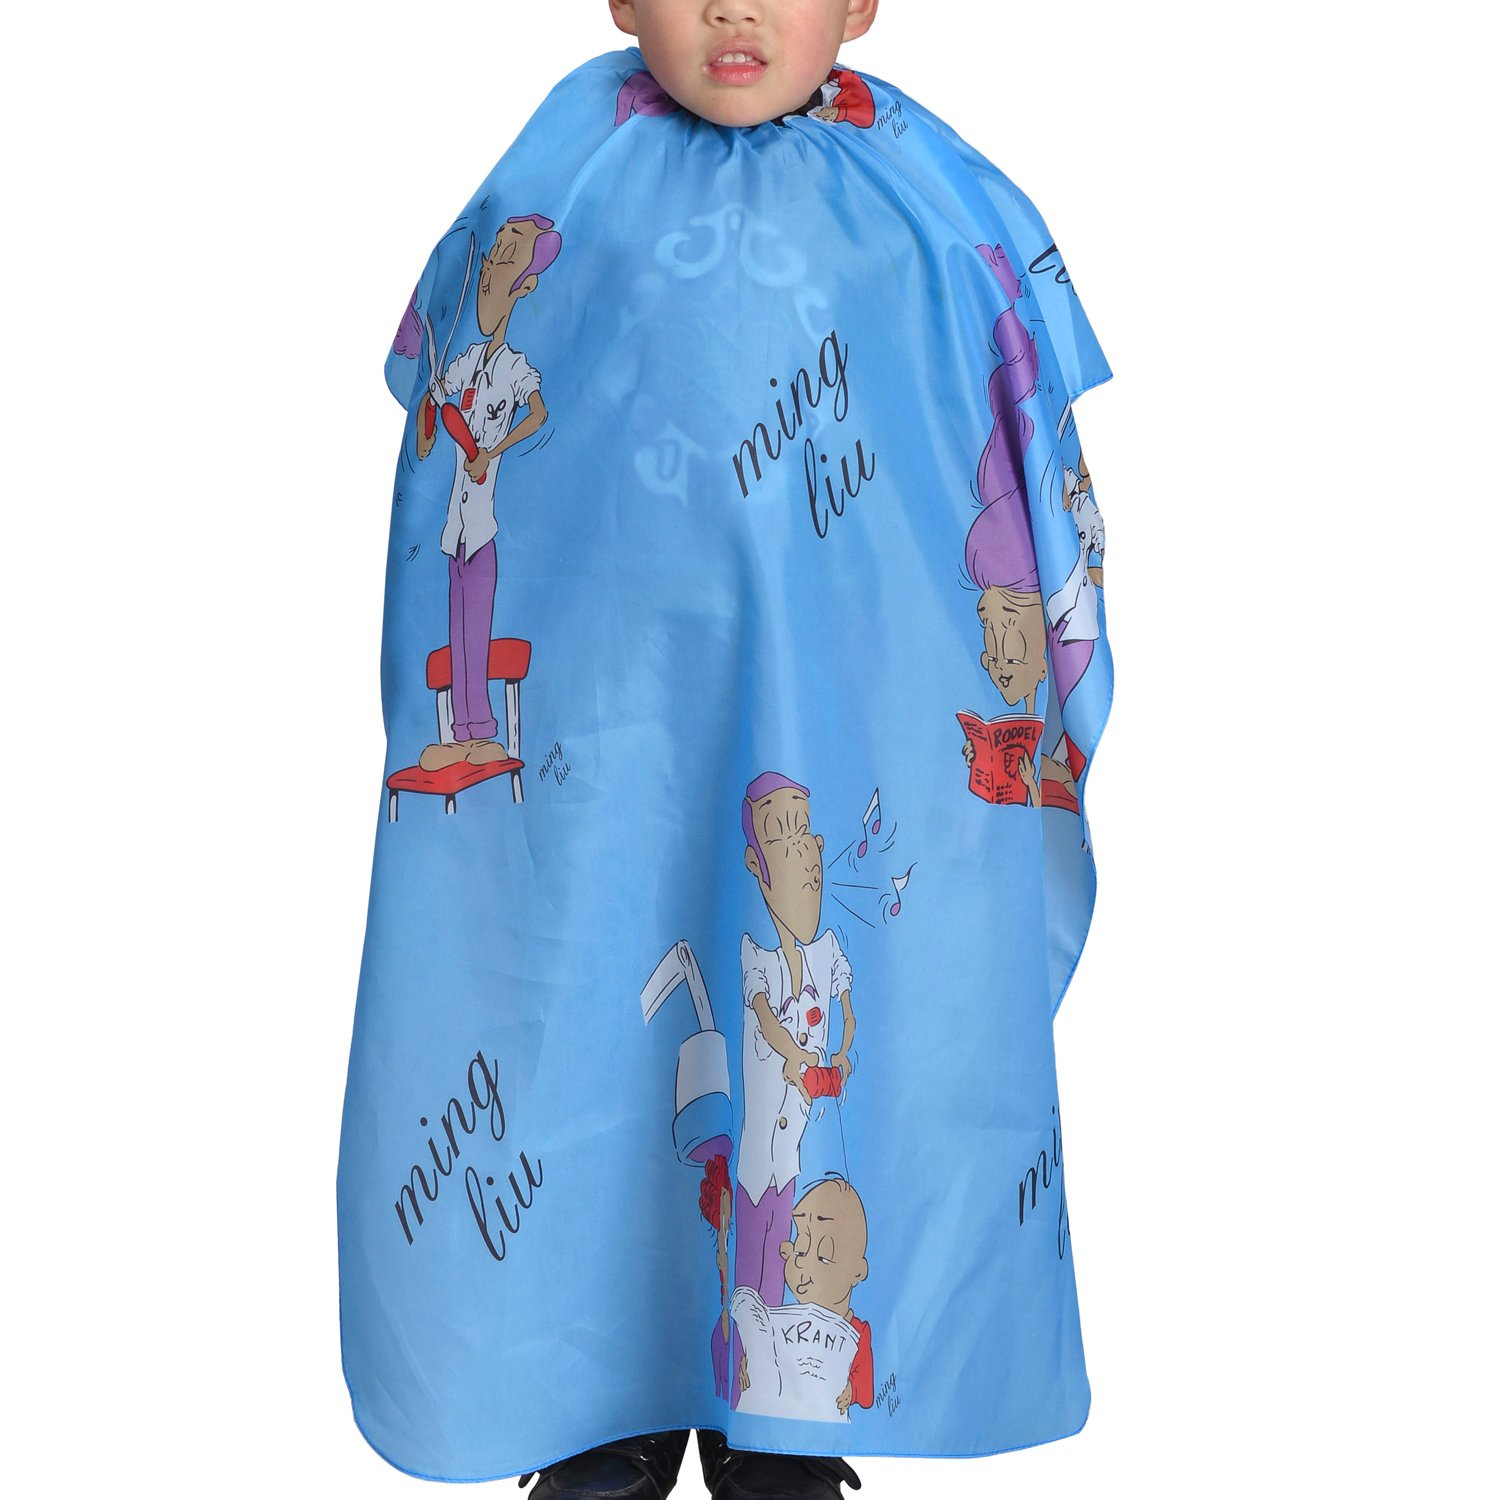 Colorfulife Child Hair Cutting Waterproof Cape Barber Kids Hair Styling Cloth with Snap Closure Professional Home Salon Hairdressing Wrap Cartoon Men Pattern (Blue) beautifulove